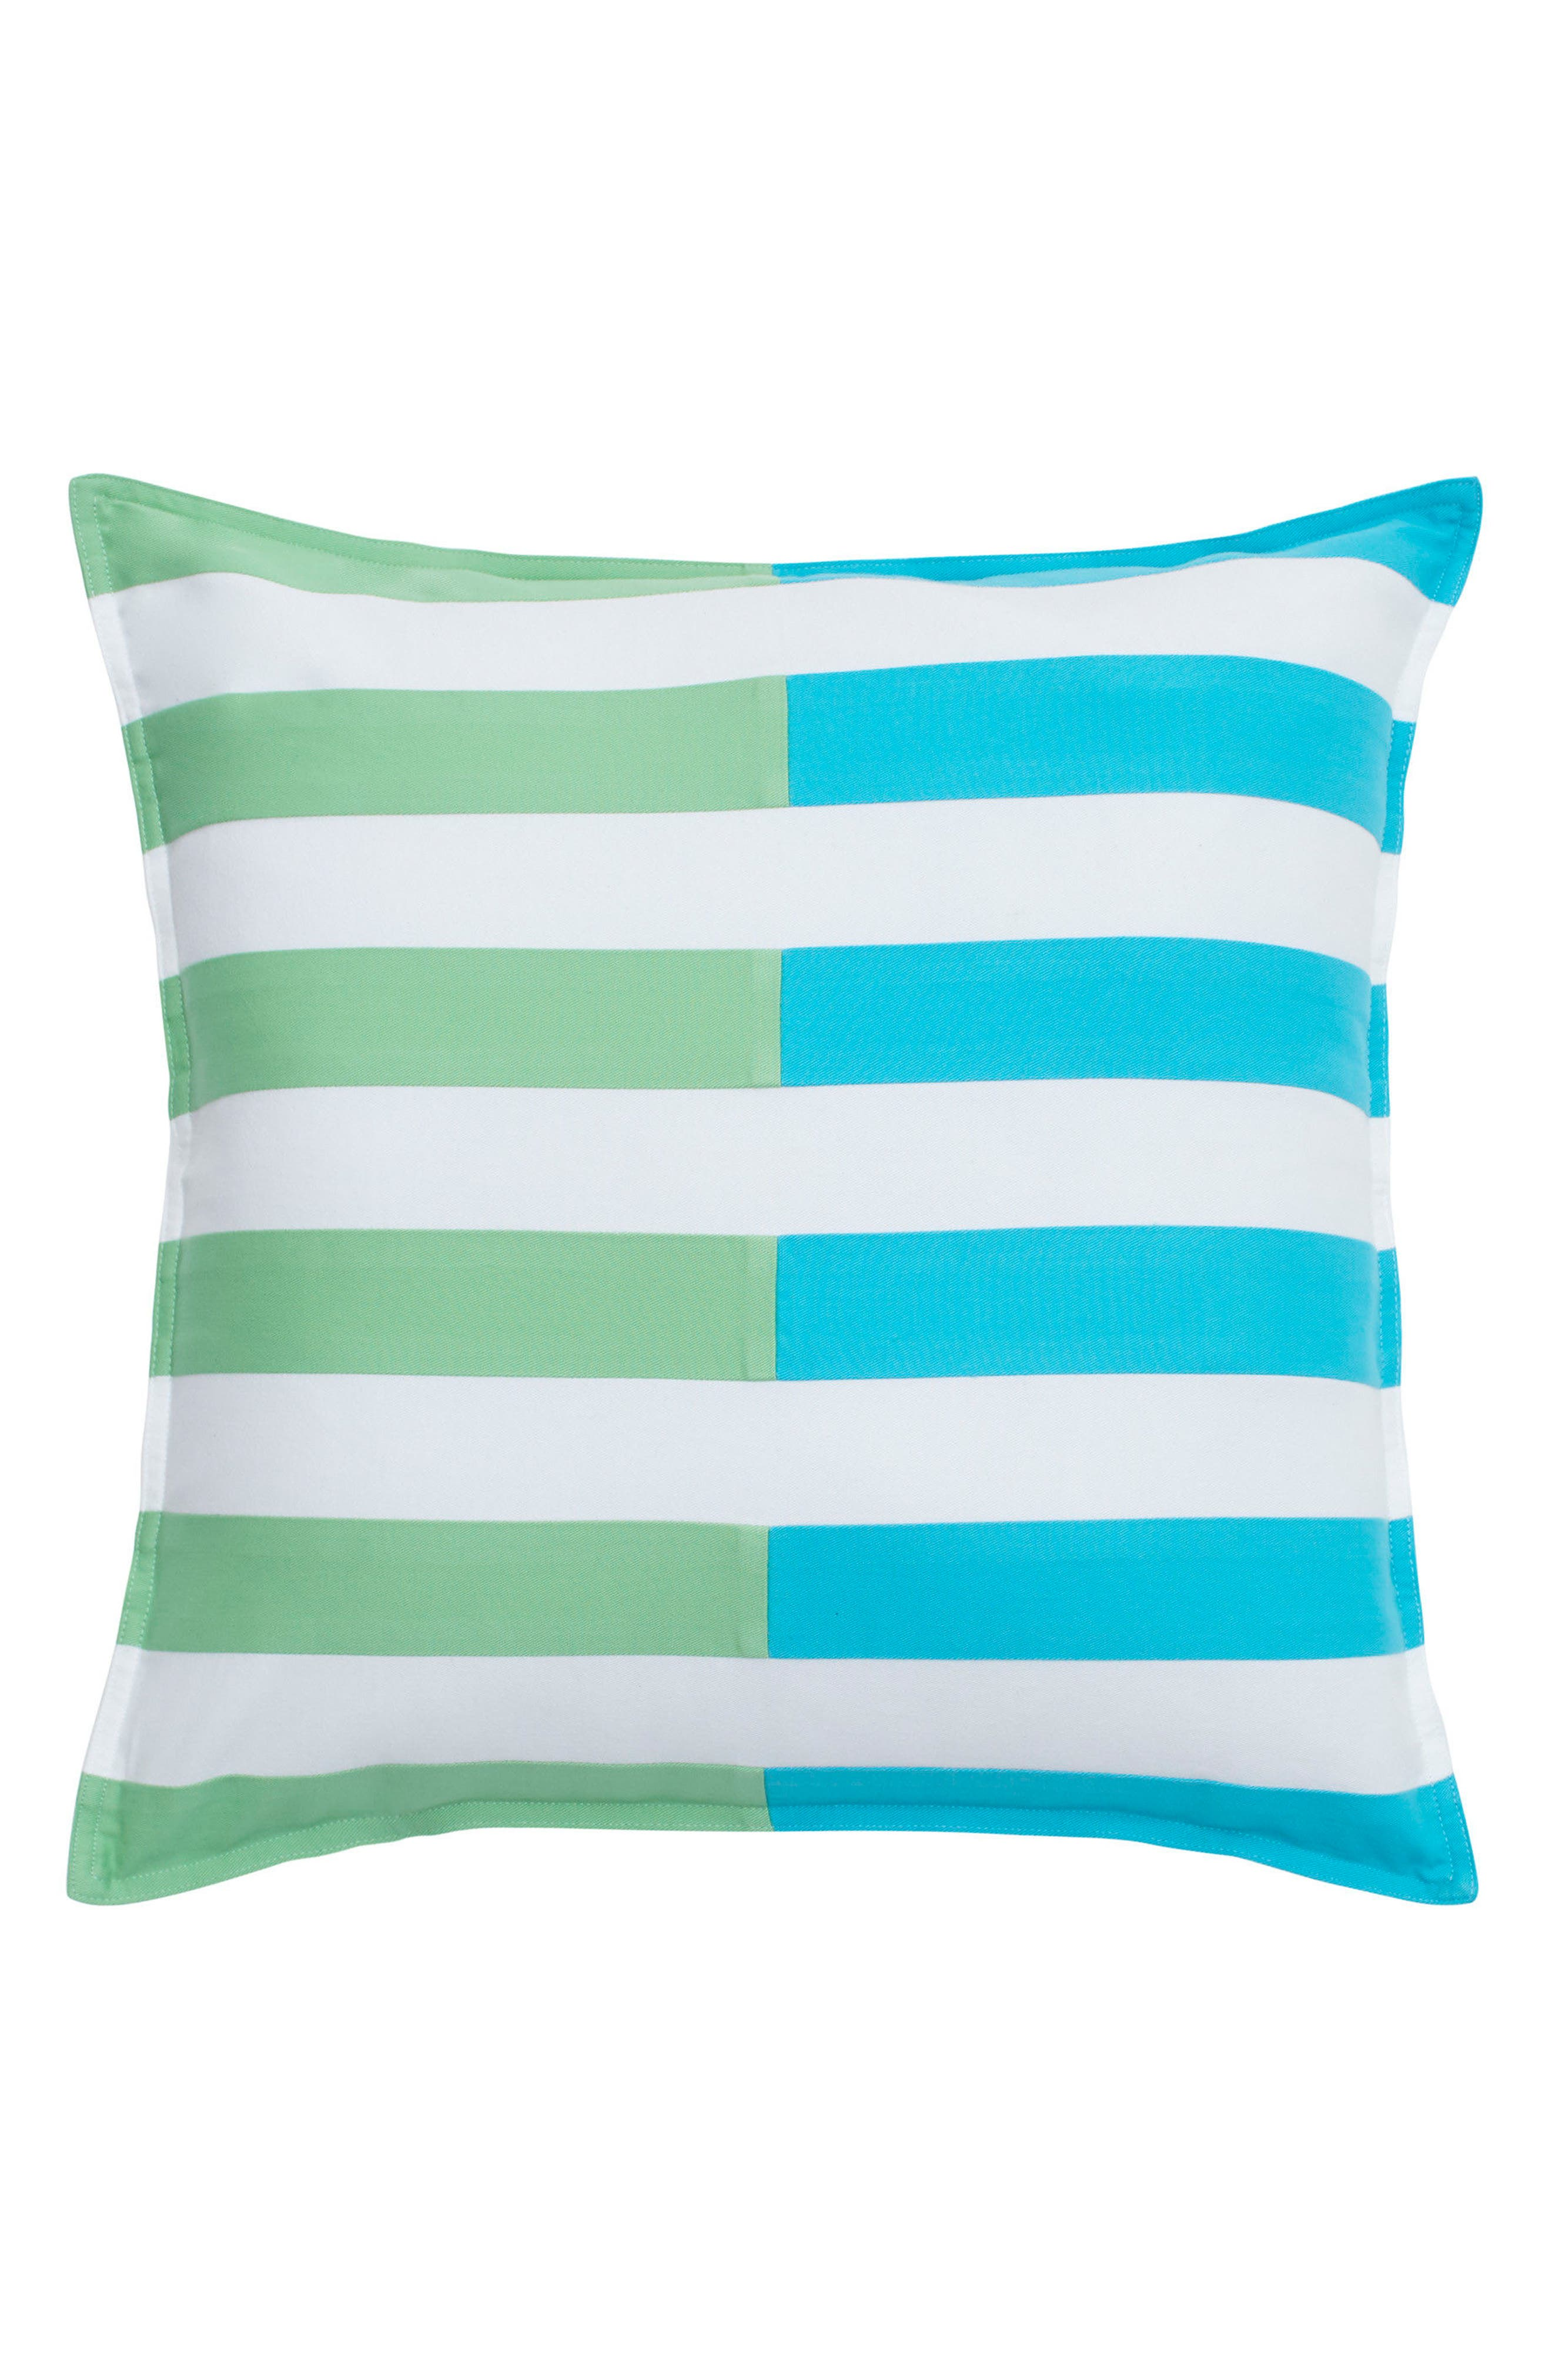 Skipjack Chino Pieced Accent Pillow,                             Main thumbnail 1, color,                             Island Blue/ Kiwi/ White